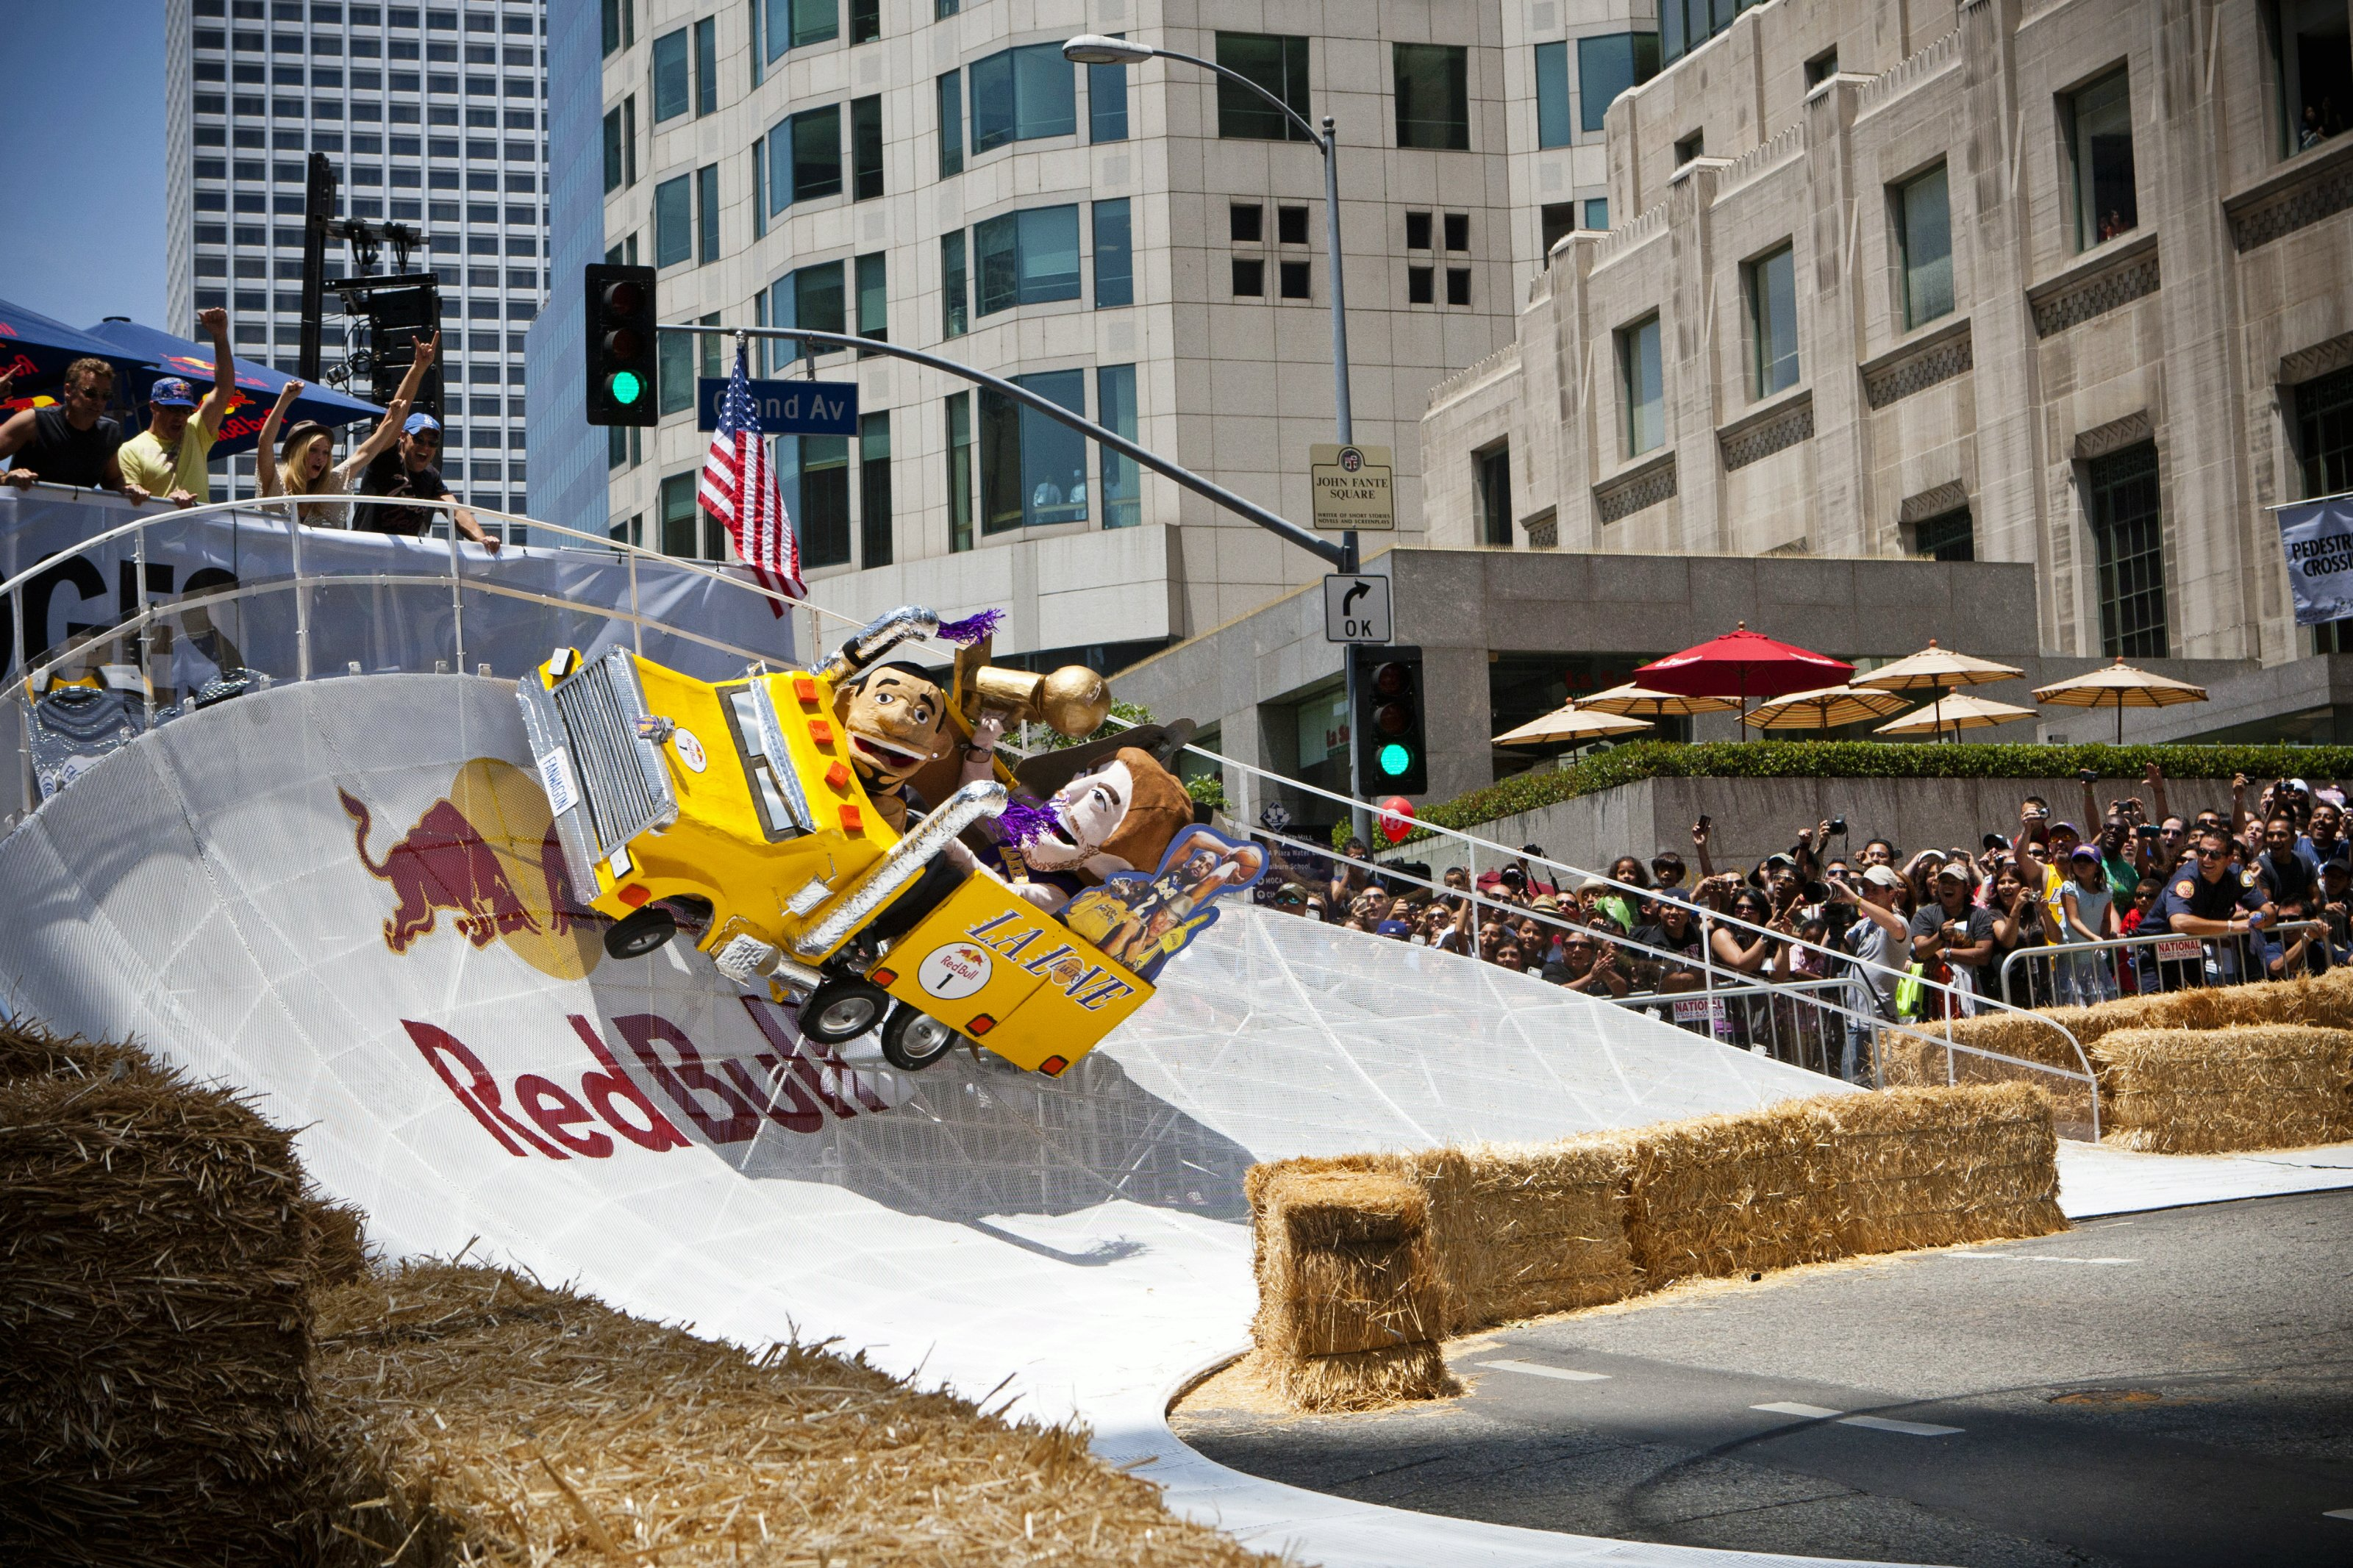 Red Bull Soapbox Race Los Angeles - Ramp